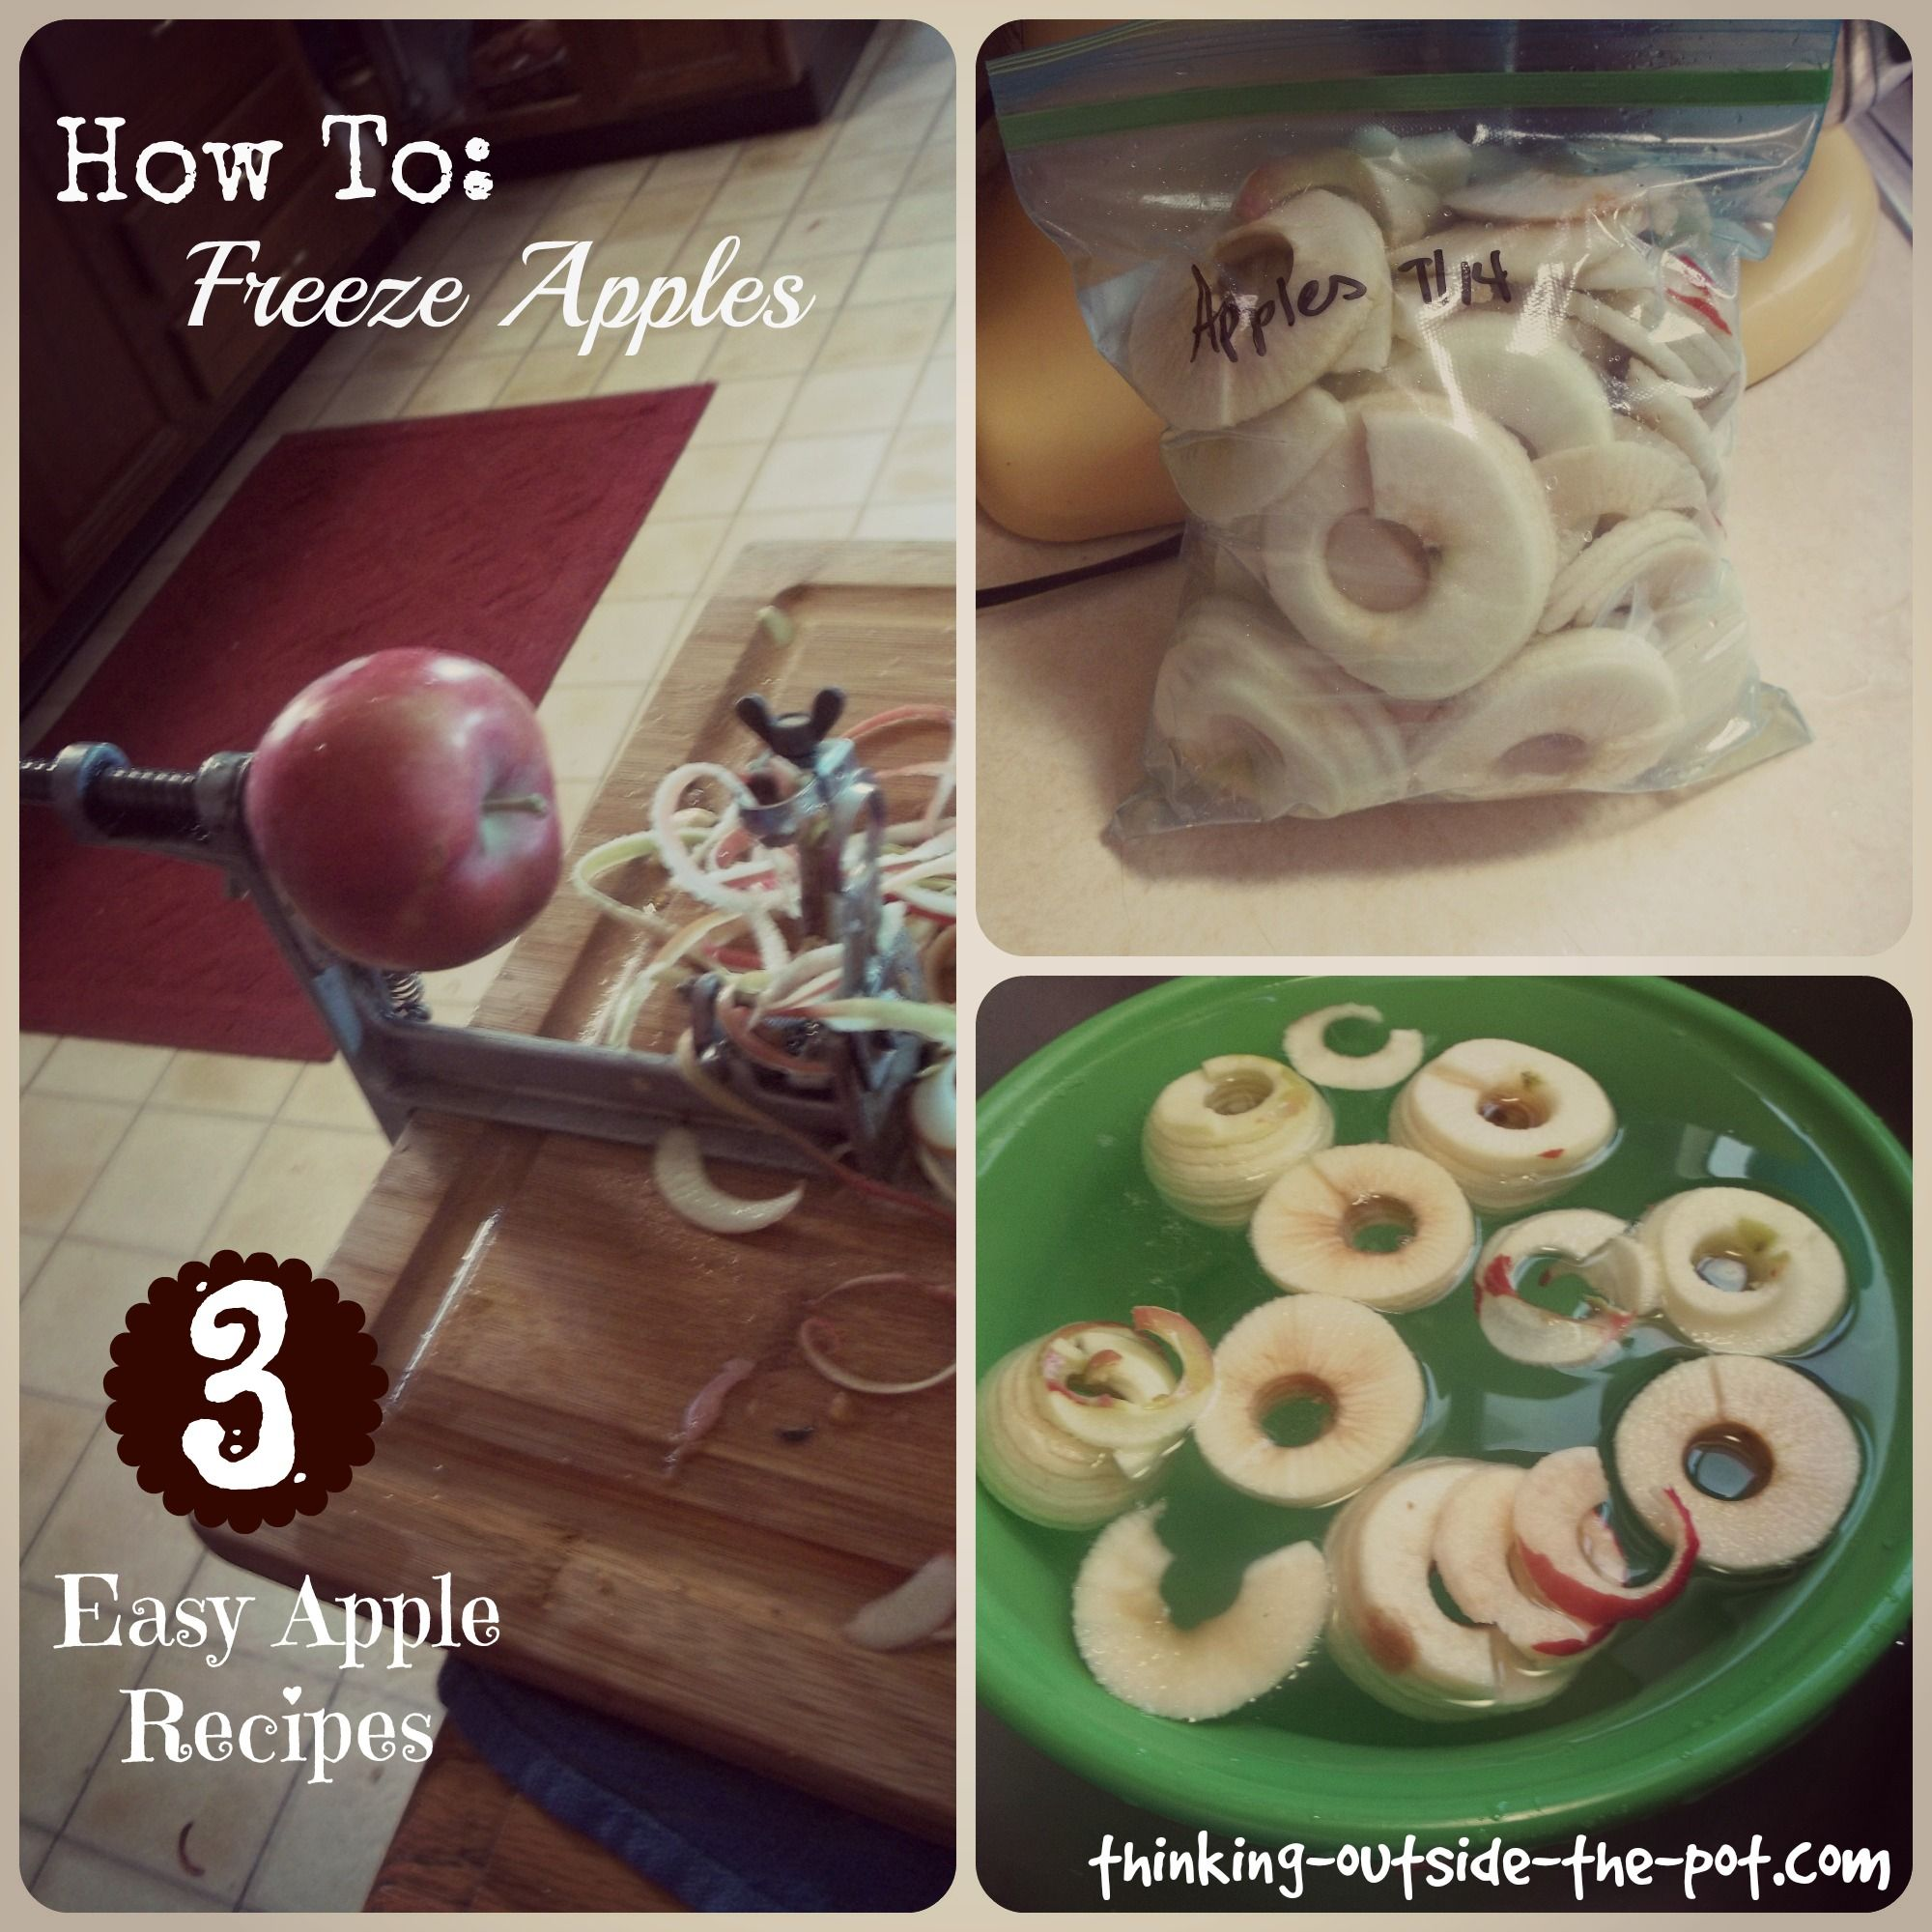 ideas about how to freeze apples on pinterest freezing apples recipe for apple cake and freeze - Can You Freeze Pears